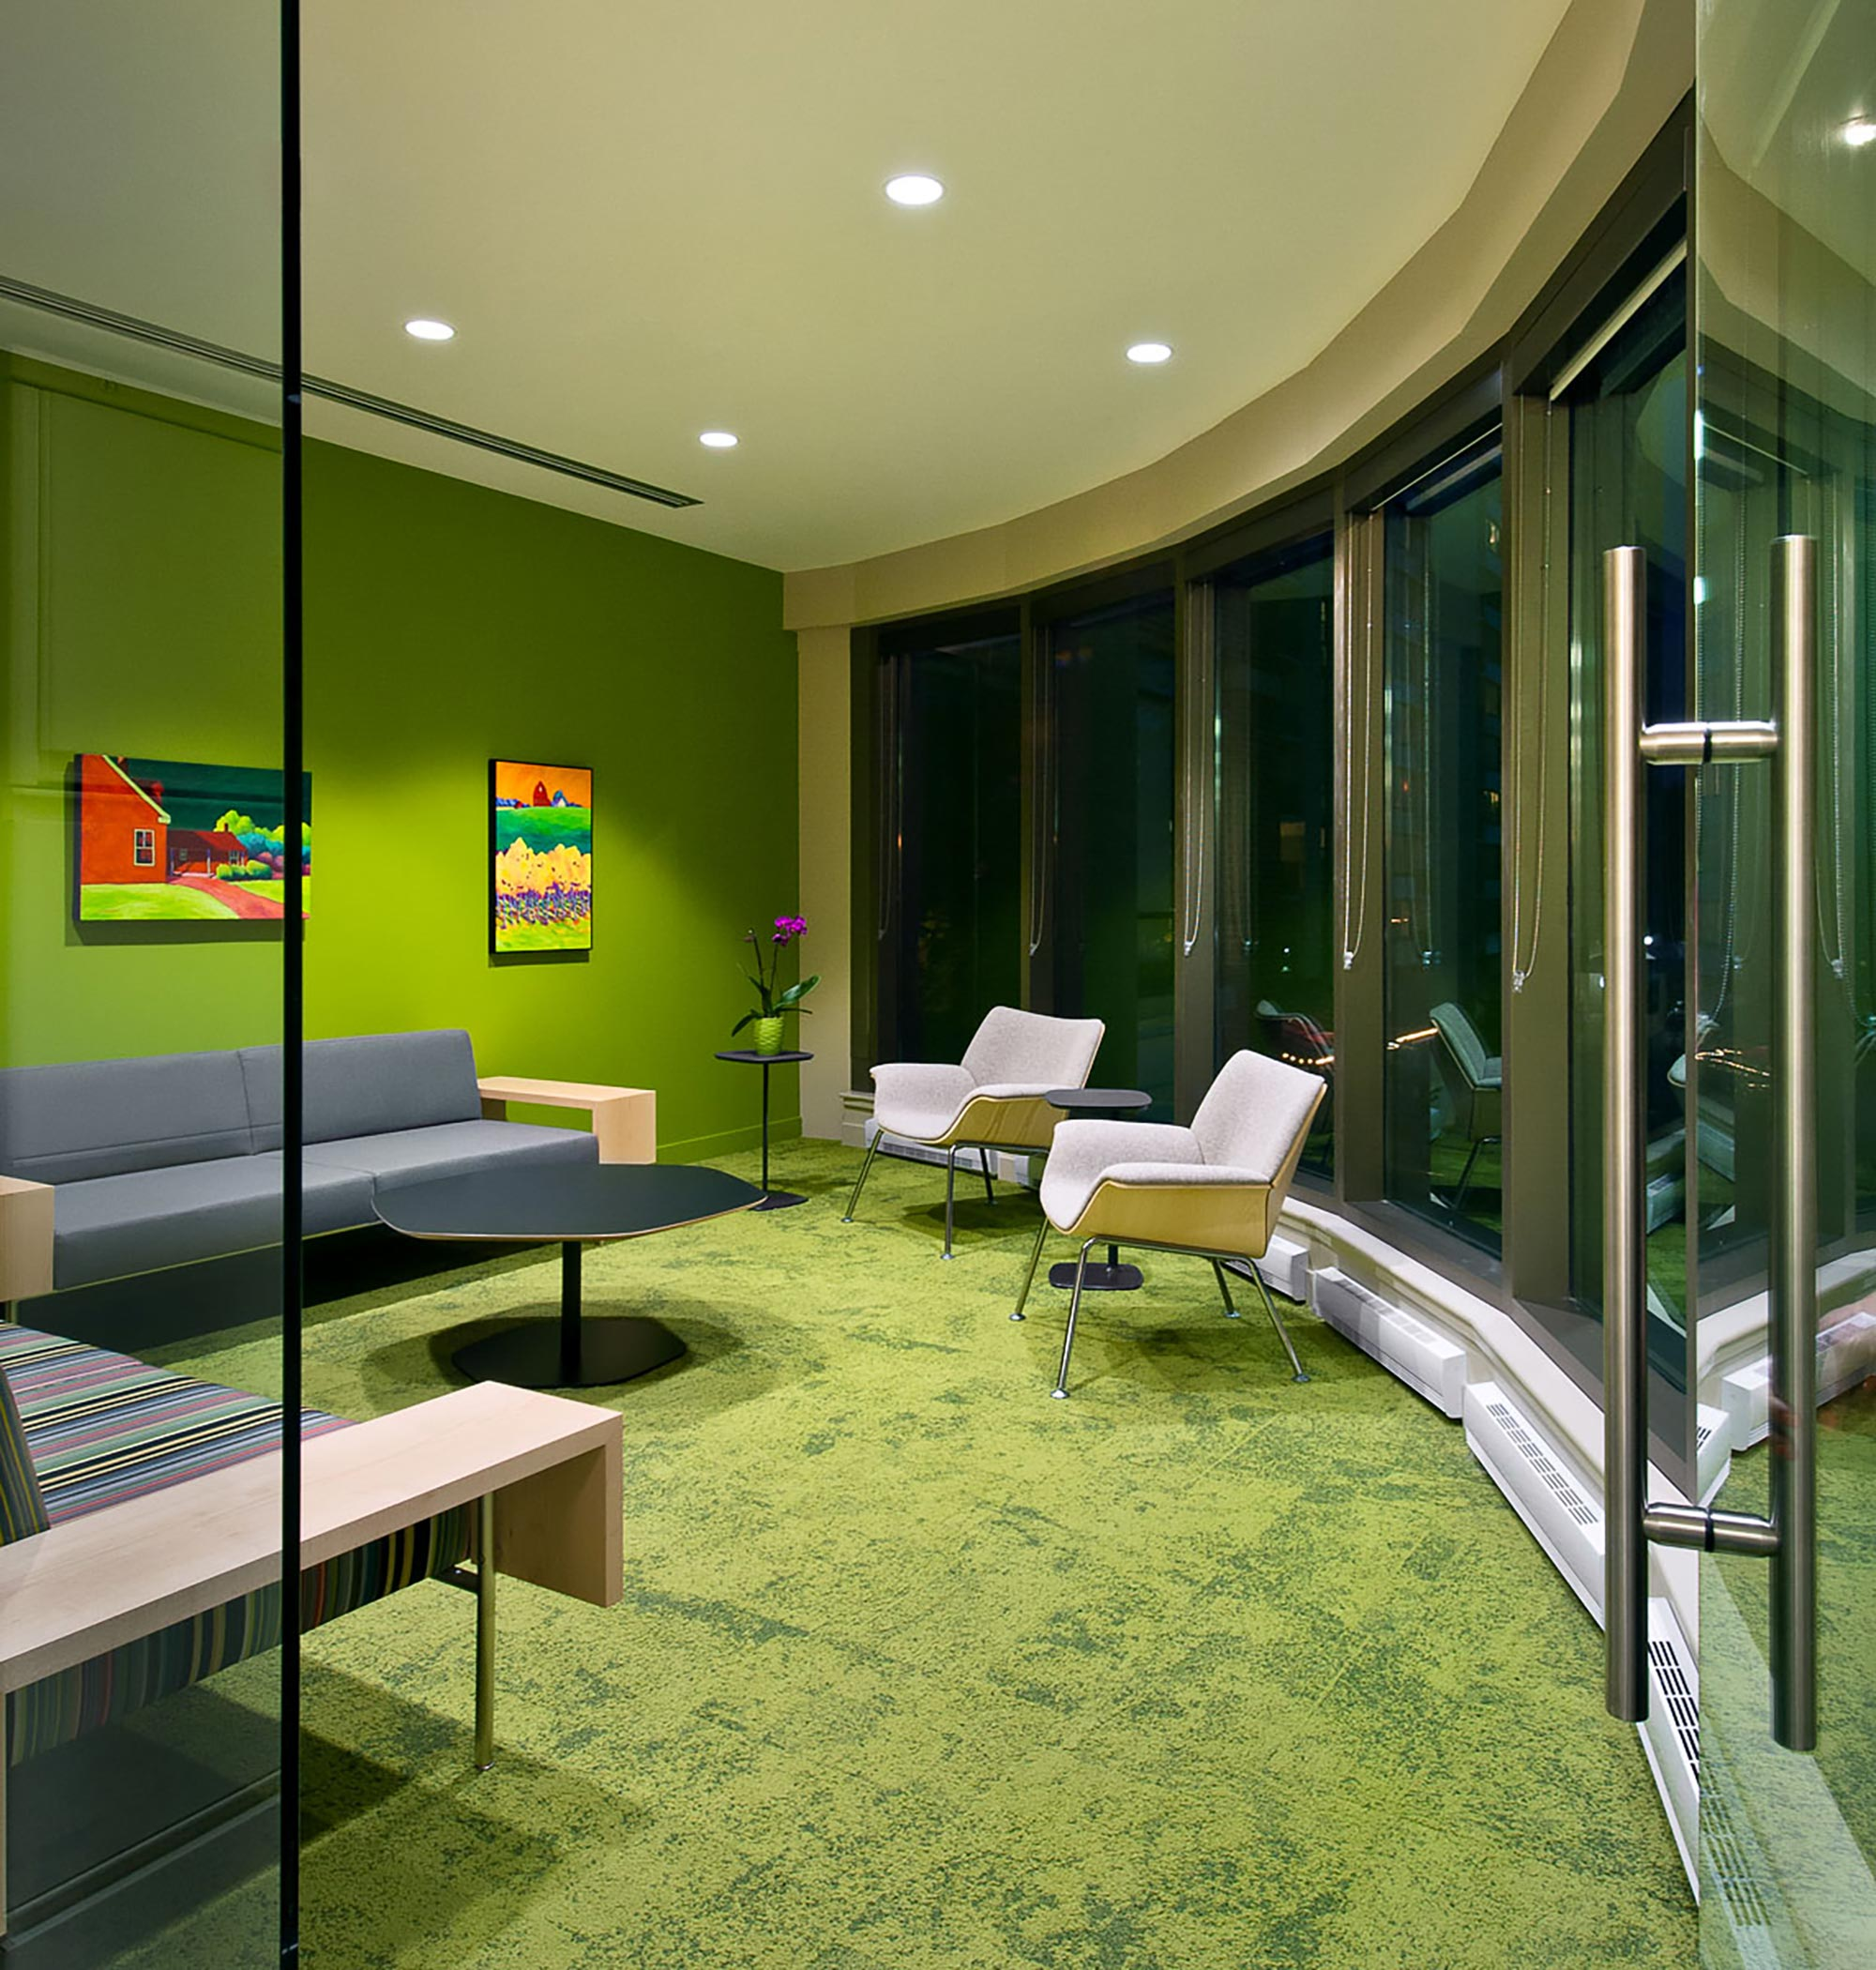 interior-design-legal-office-halifax-common-area.jpg